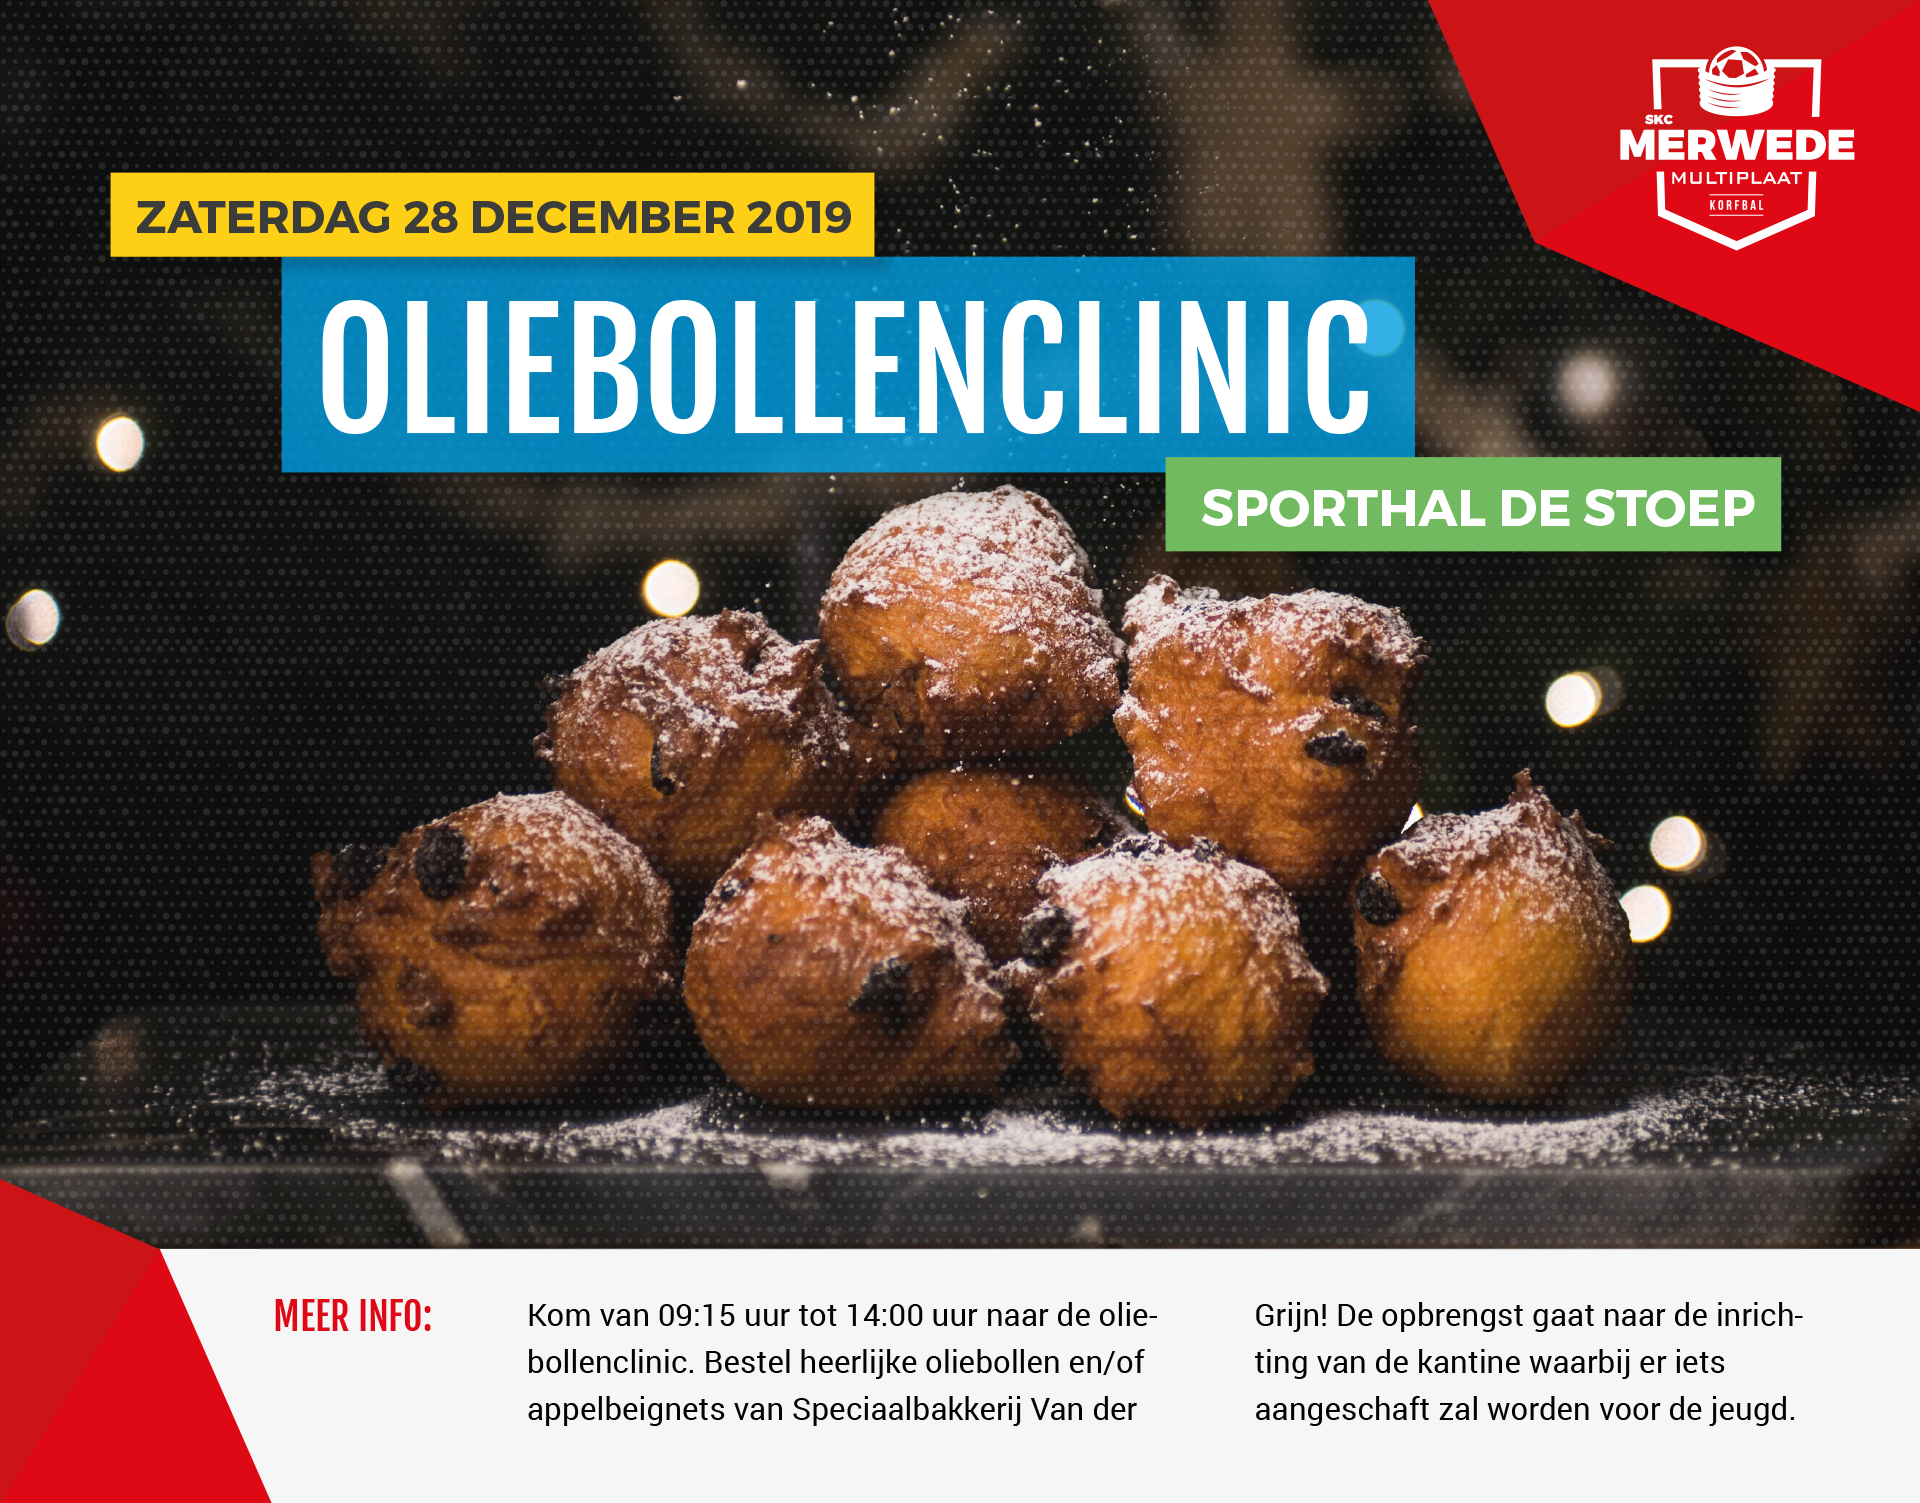 Oliebollenclinic